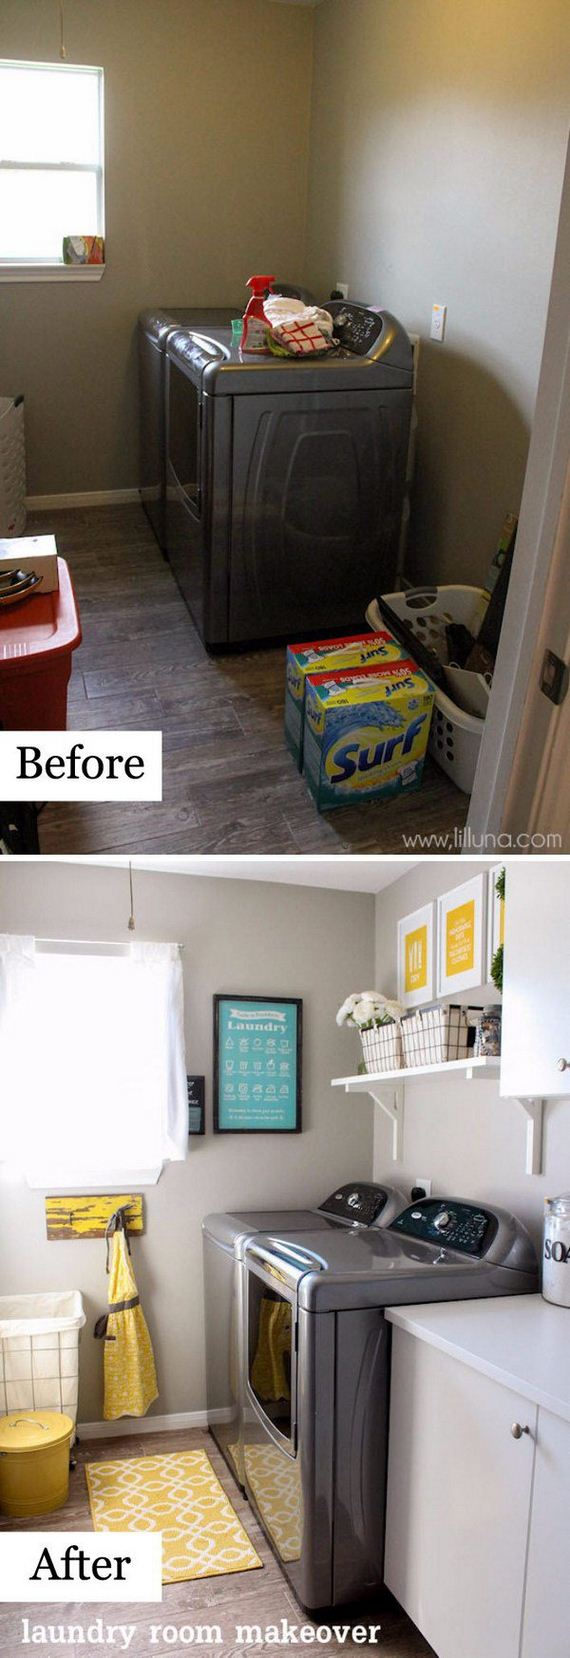 19-before-laundry-room